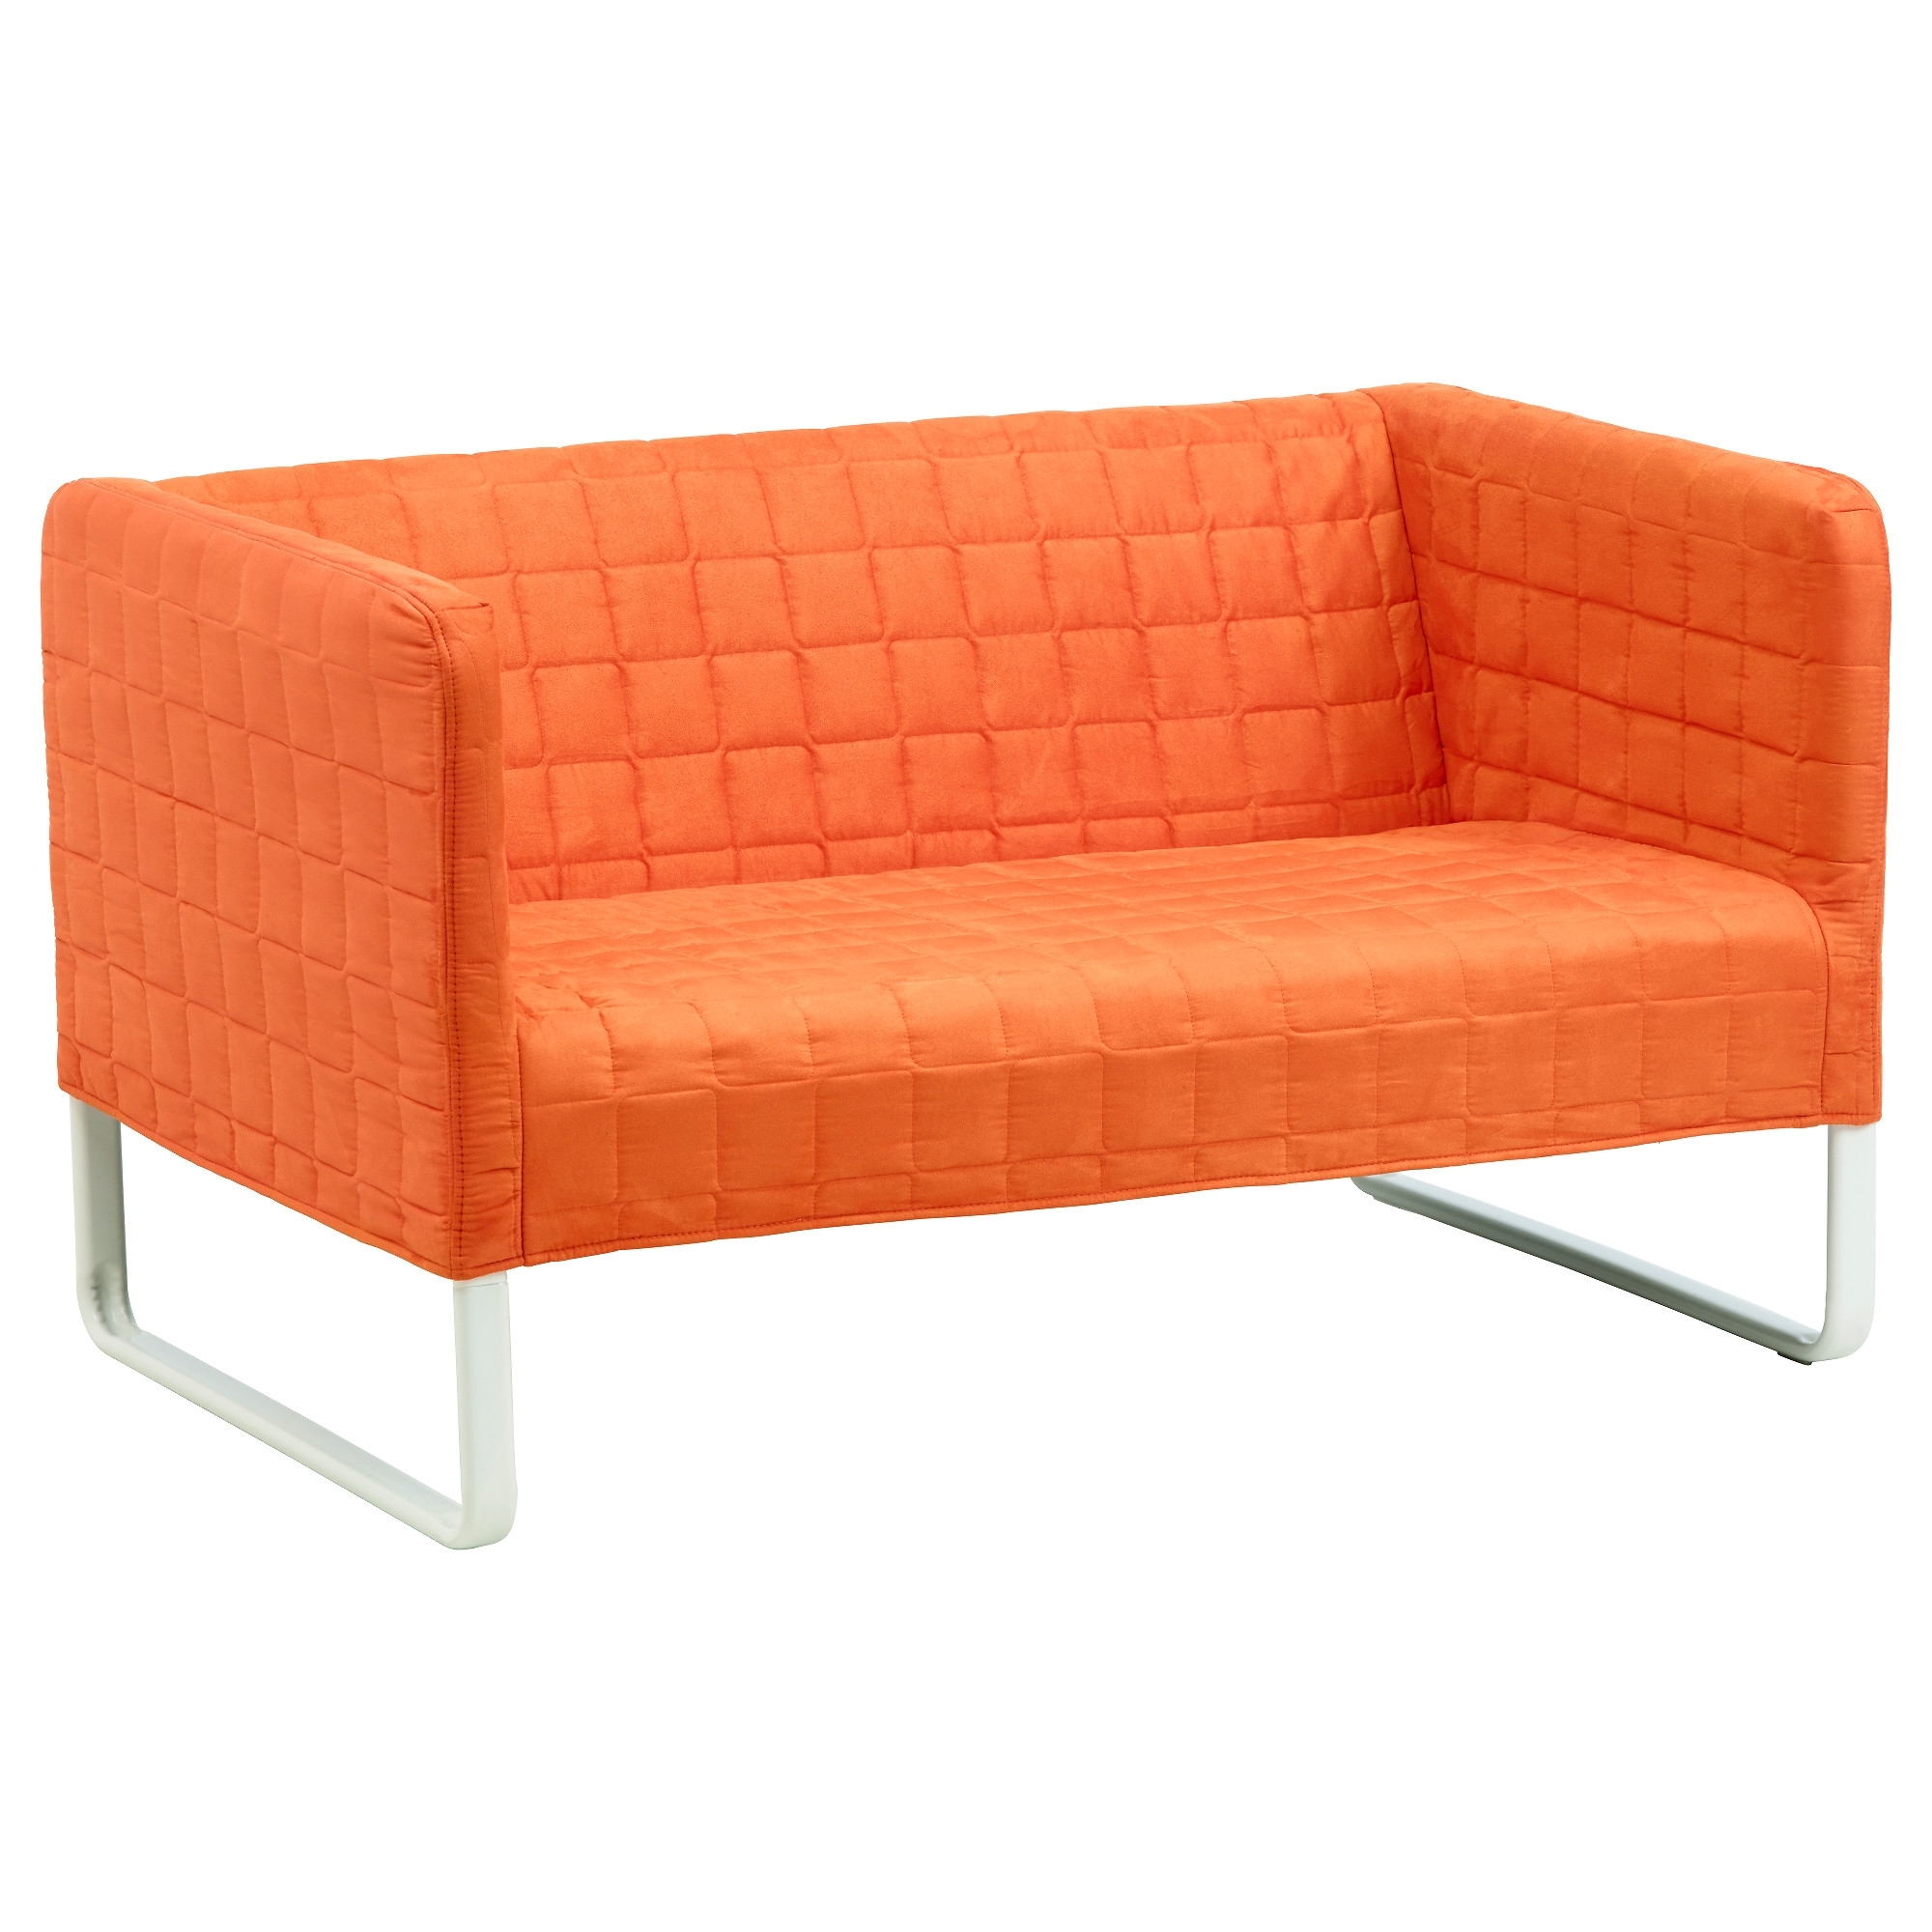 Famous Two Seater Sofas (View 1 of 15)